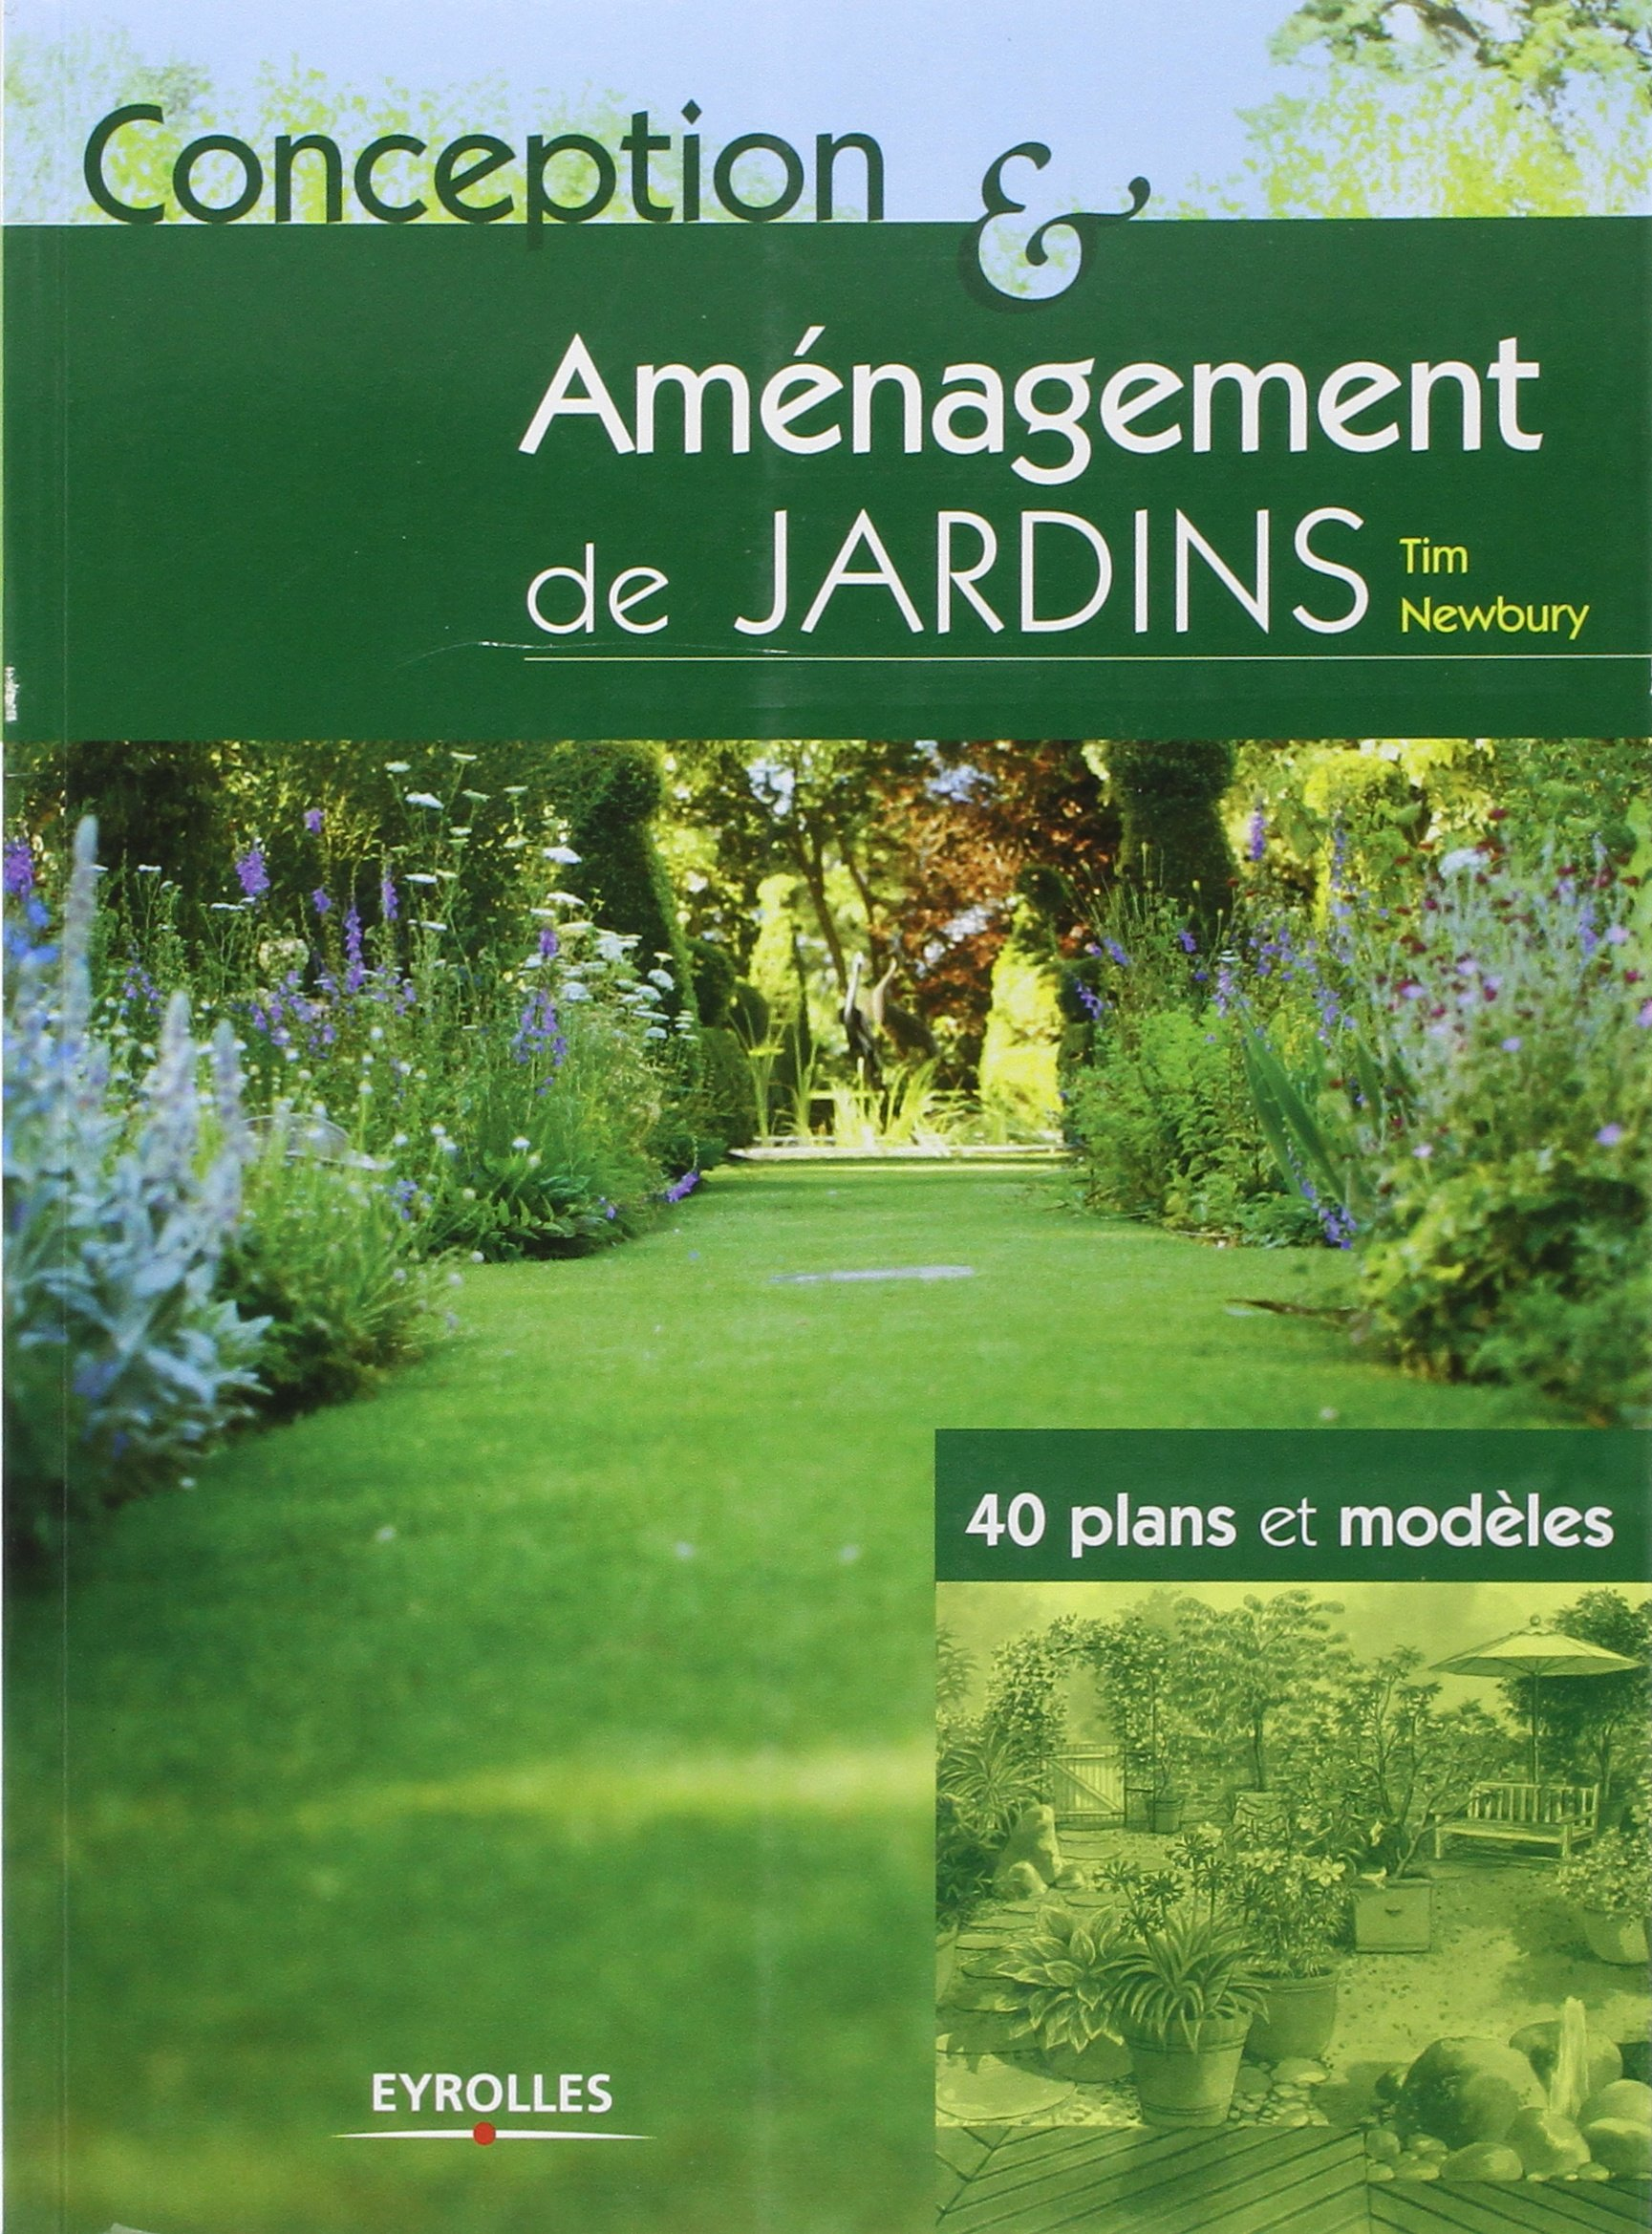 amazonfr conception et amnagement de jardins 40 plans et modles tim newbury livres - Amenagement De Jardin